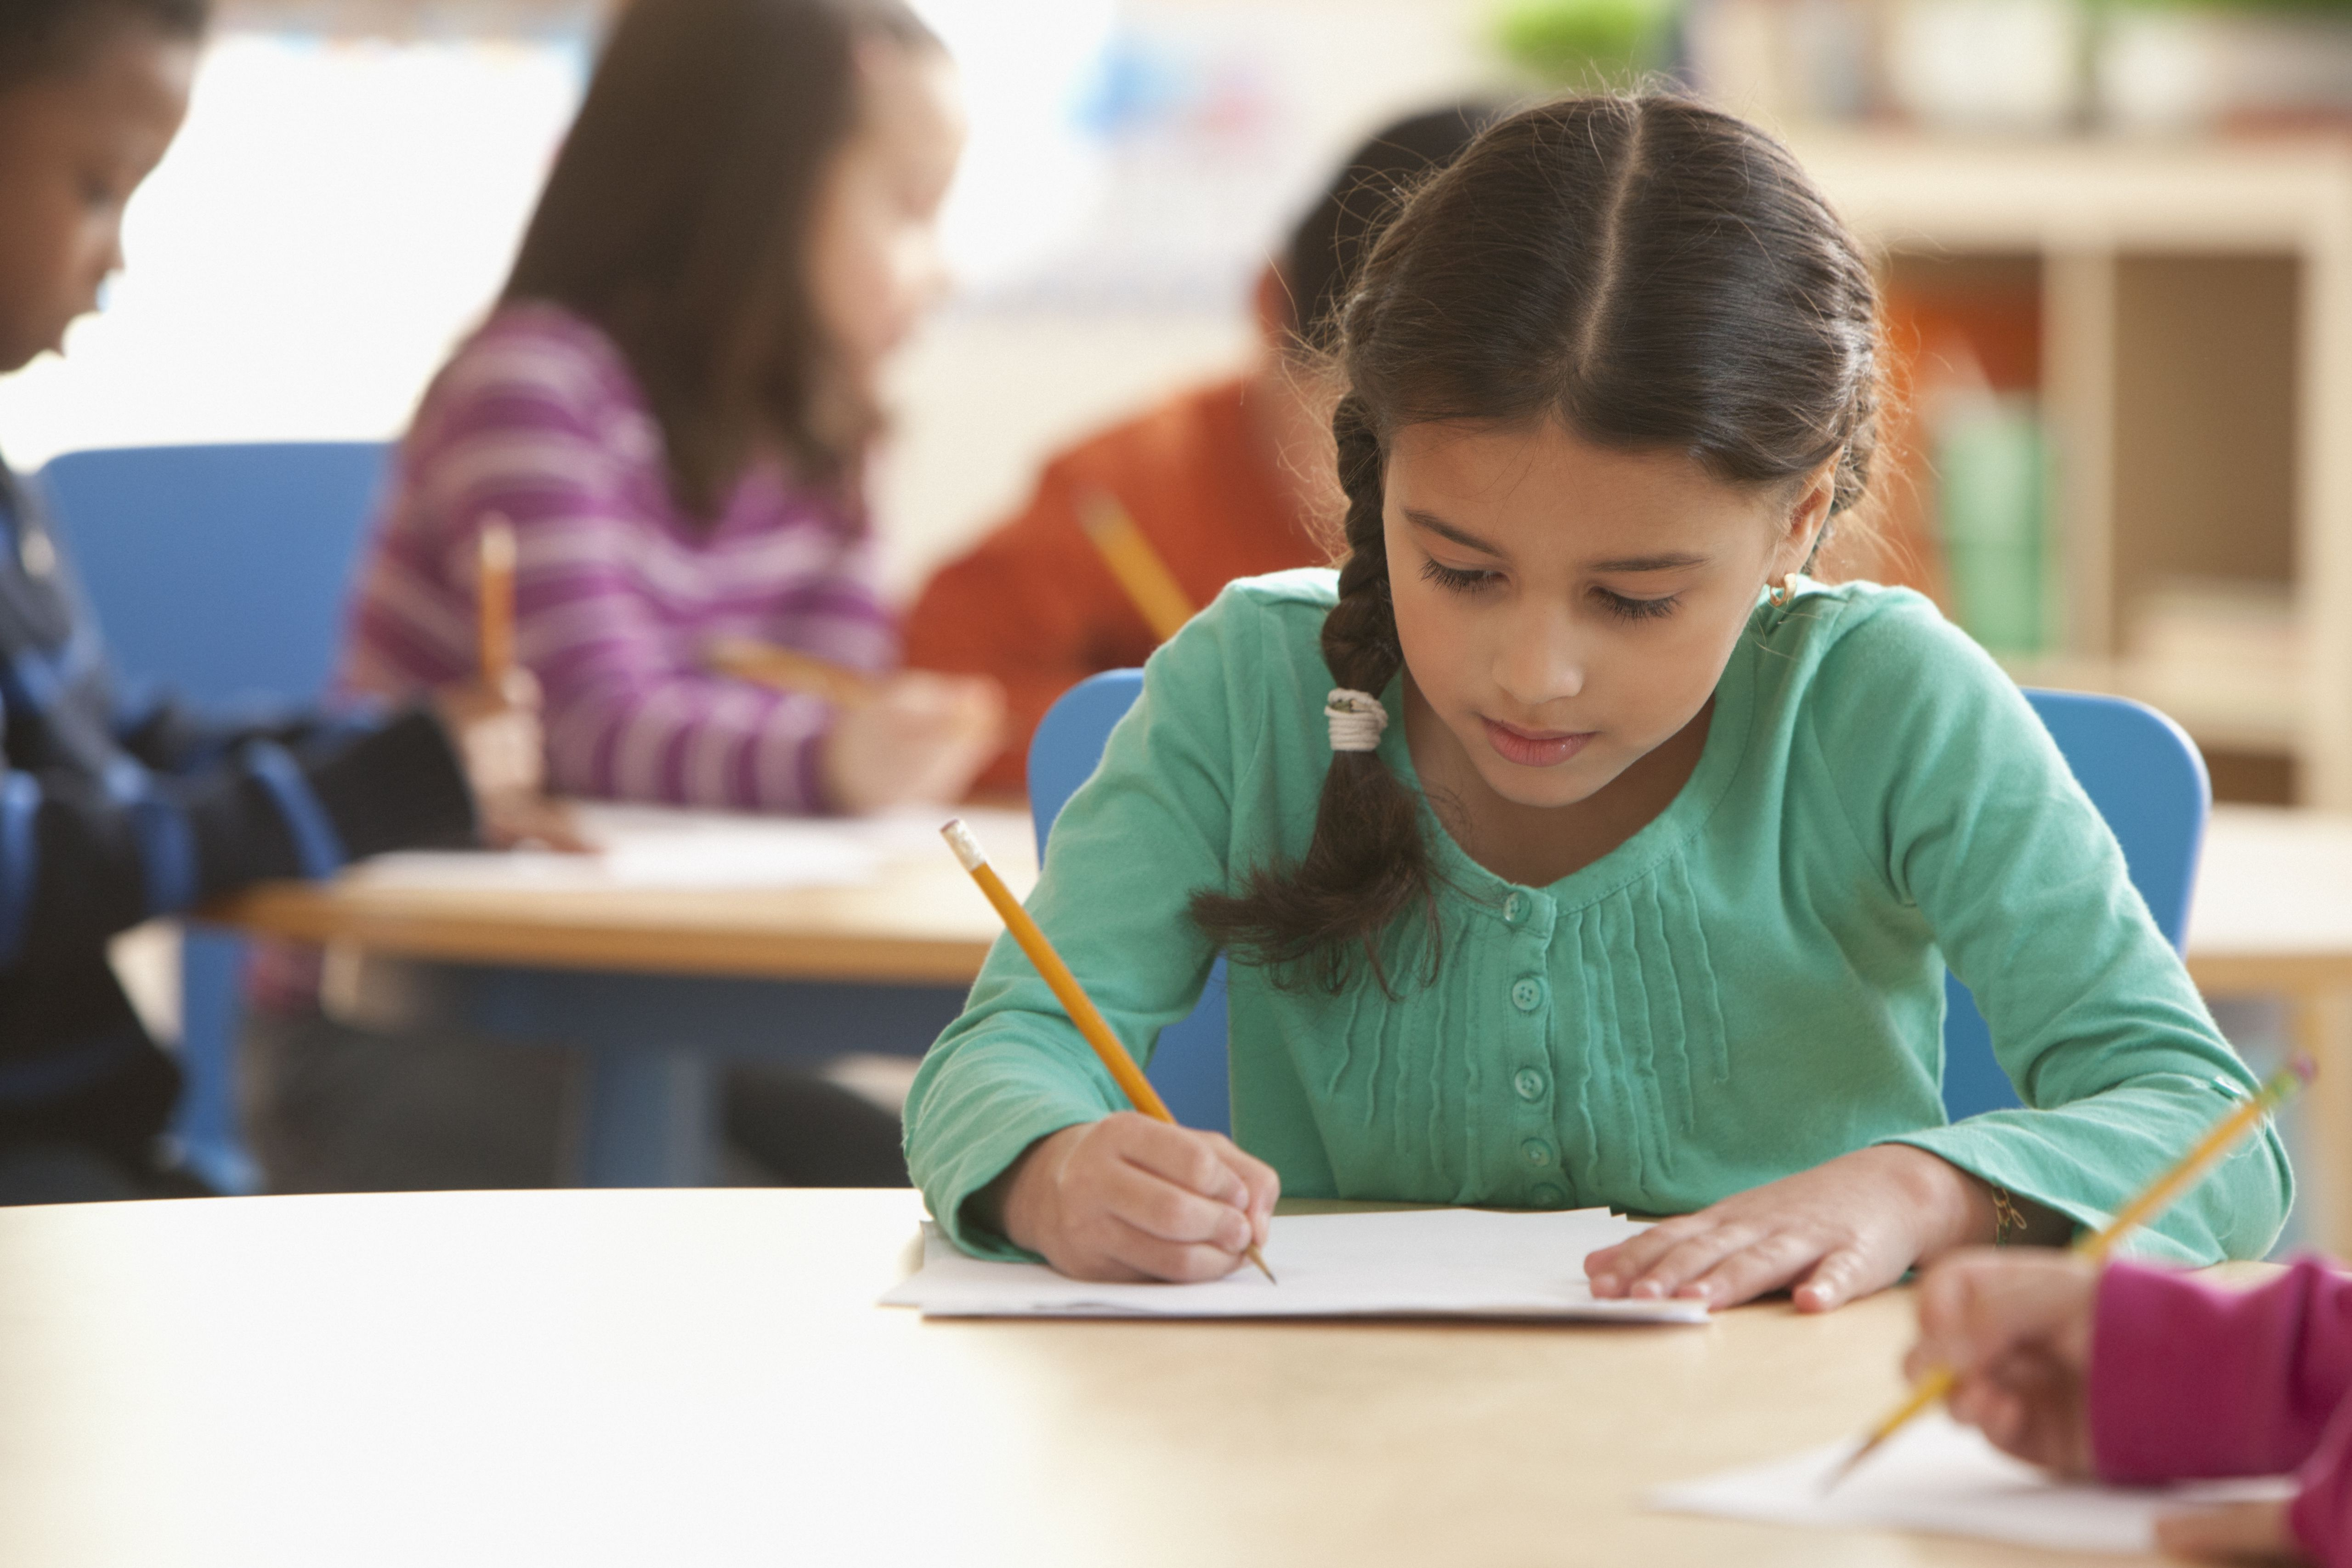 49 Thought-Provoking Opinion Writing Prompts for Students